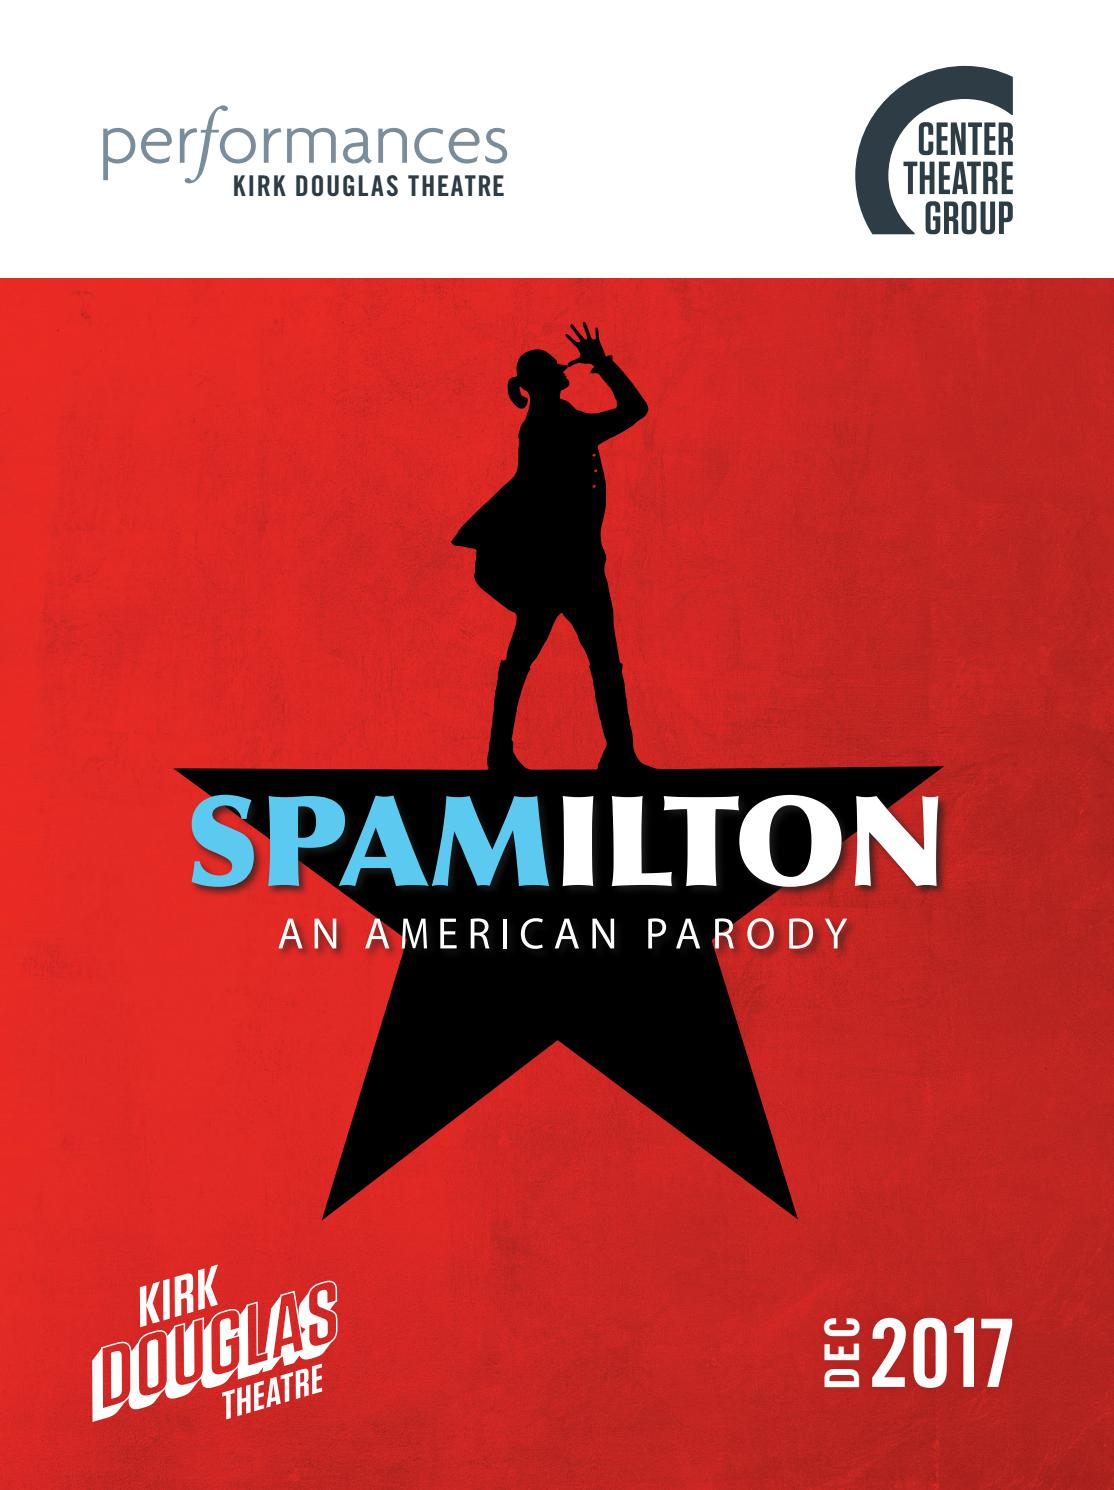 Spamilton at Center Theatre Group, Performances magazine December